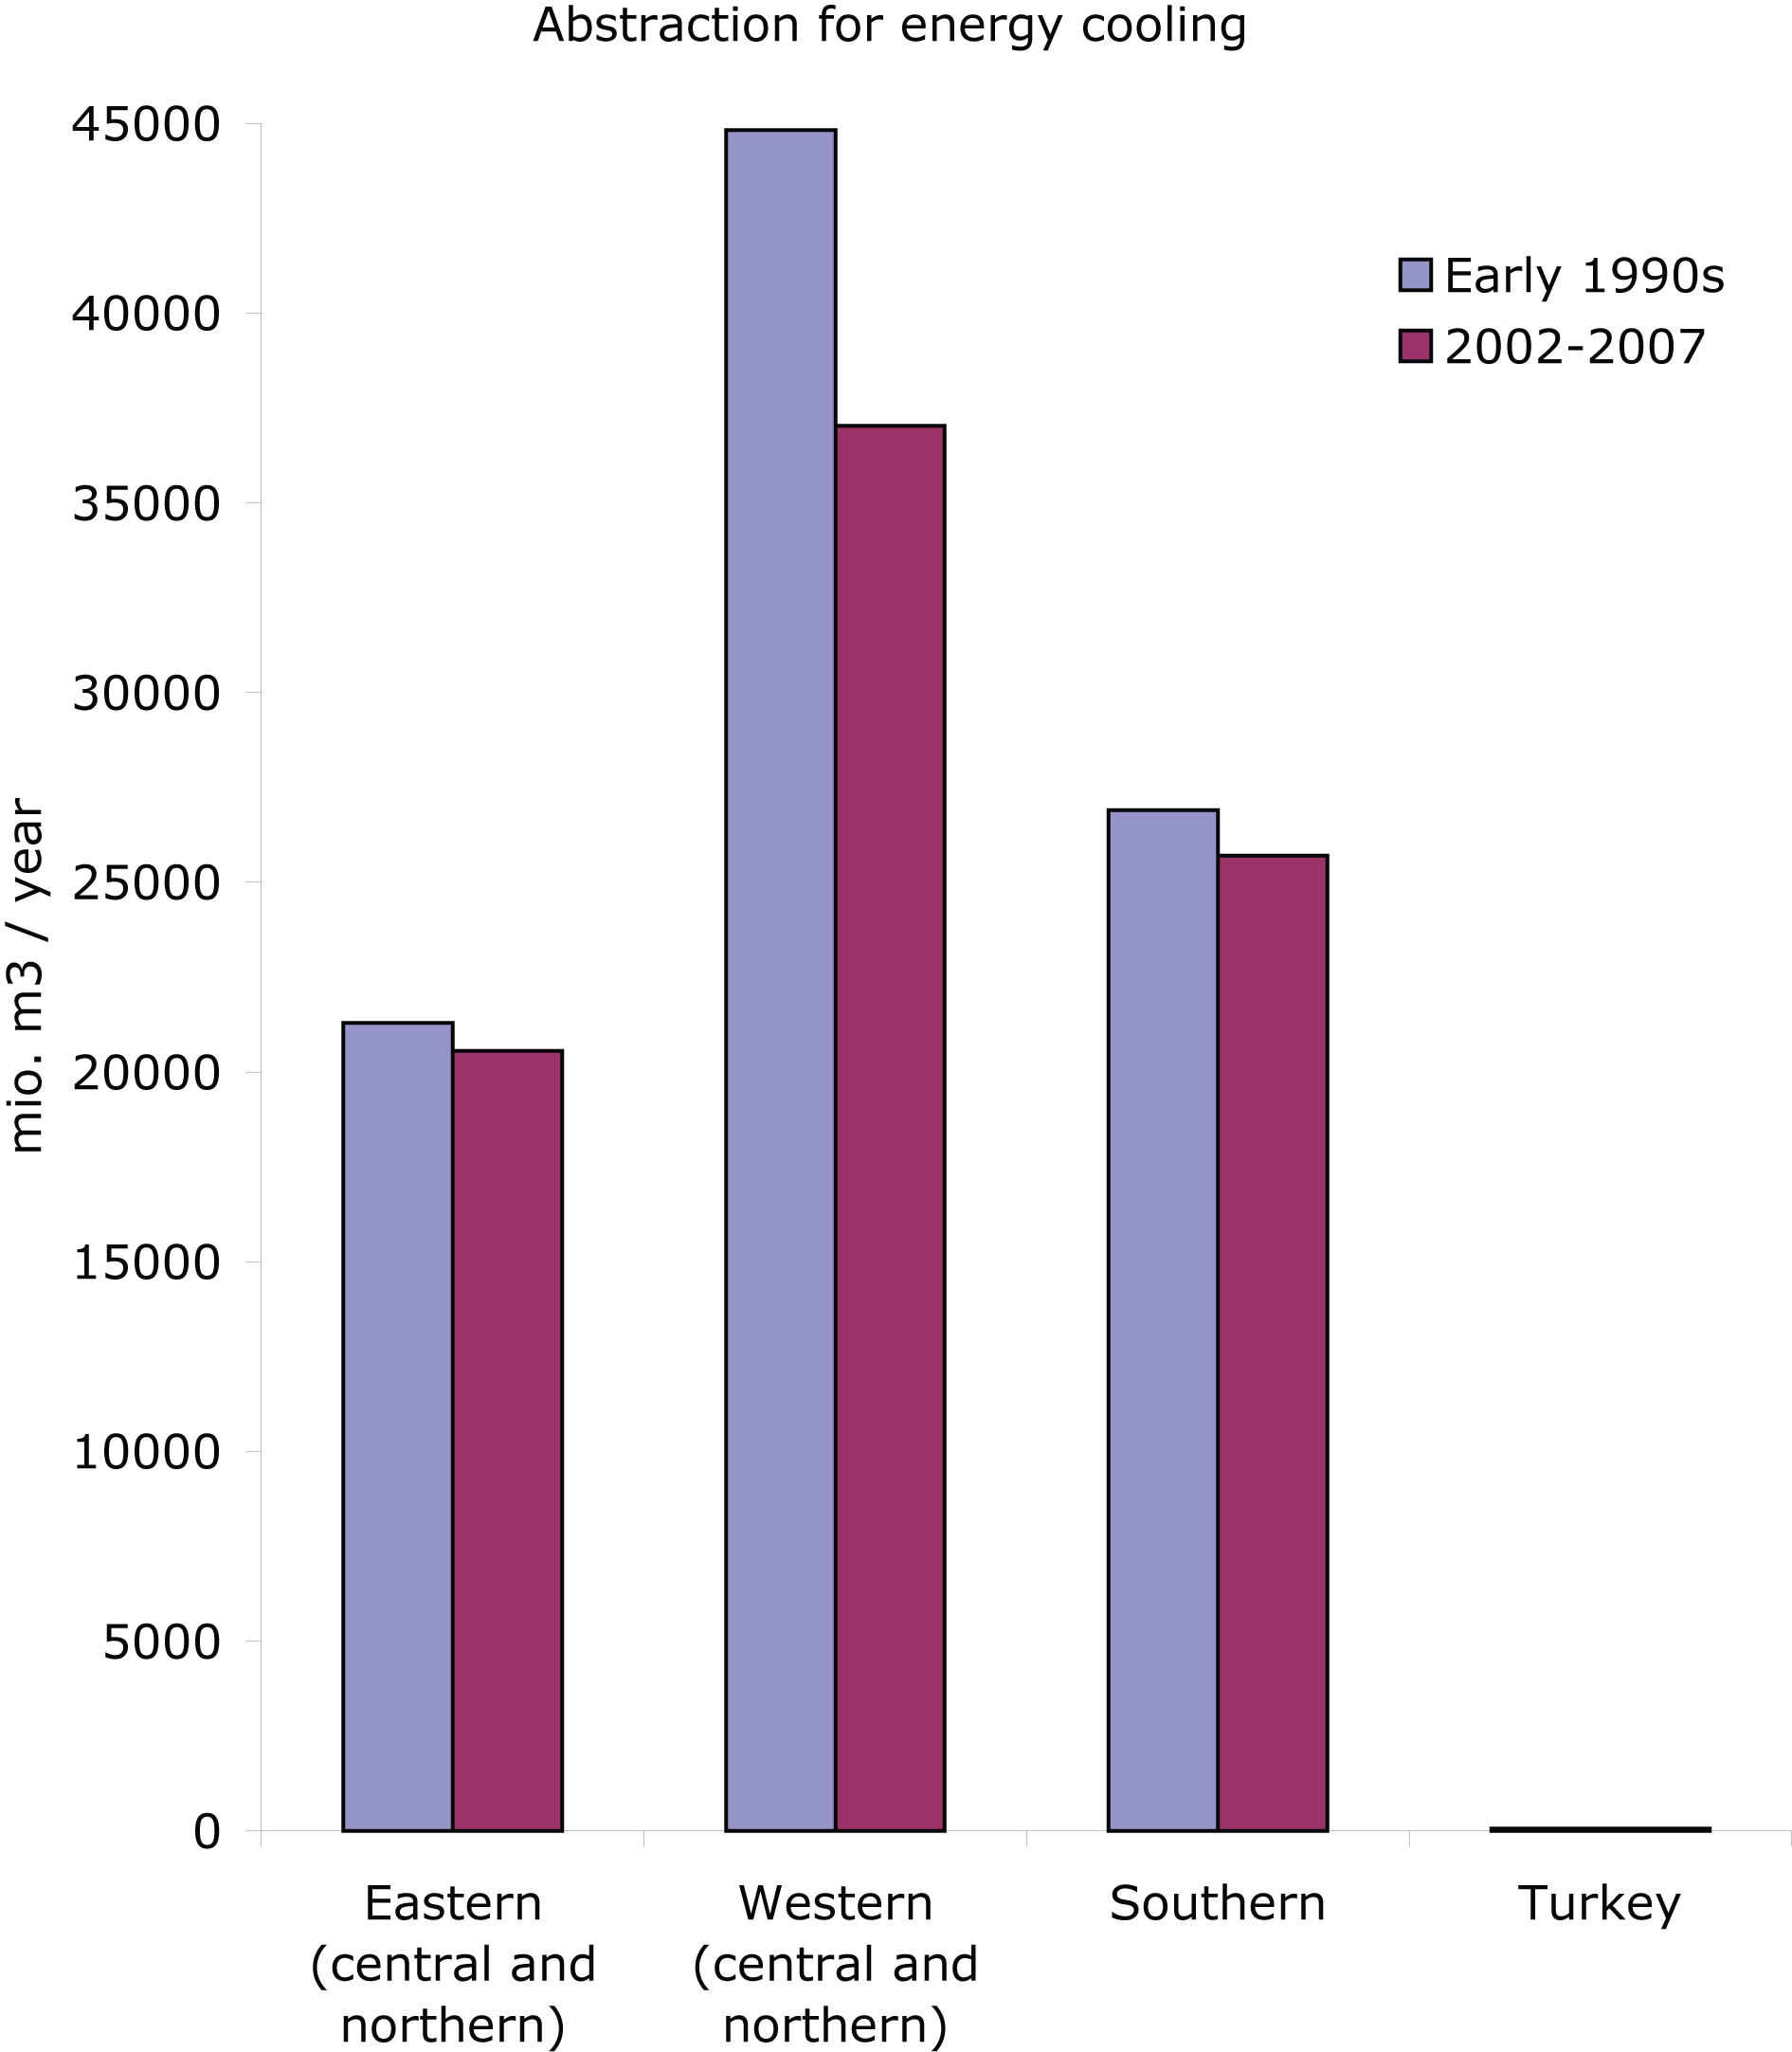 Water abstraction for energy cooling (million m3/year) in early 1990s and 2002-2007